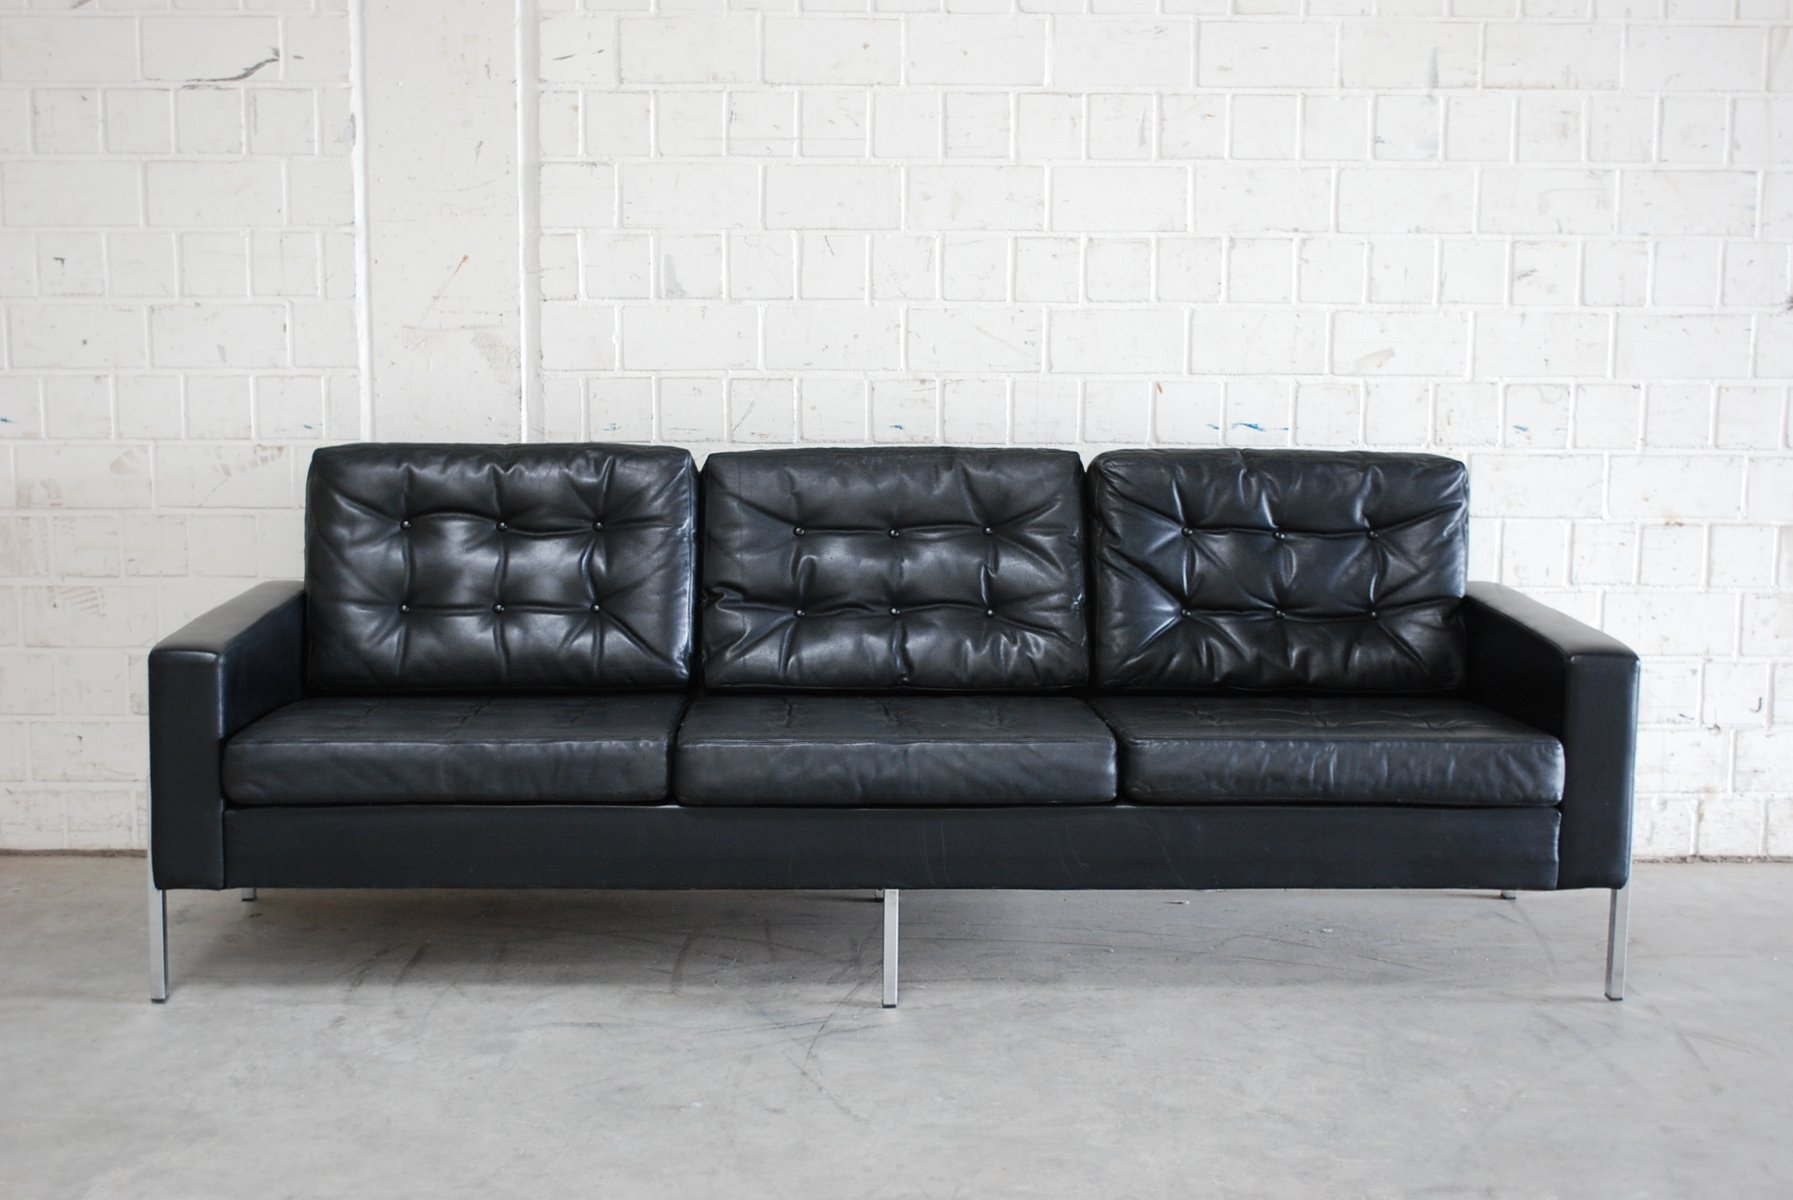 Vintage German Black Leather Sofa, 1960s for sale at Pamono | {Küchenmöbel made in germany 38}